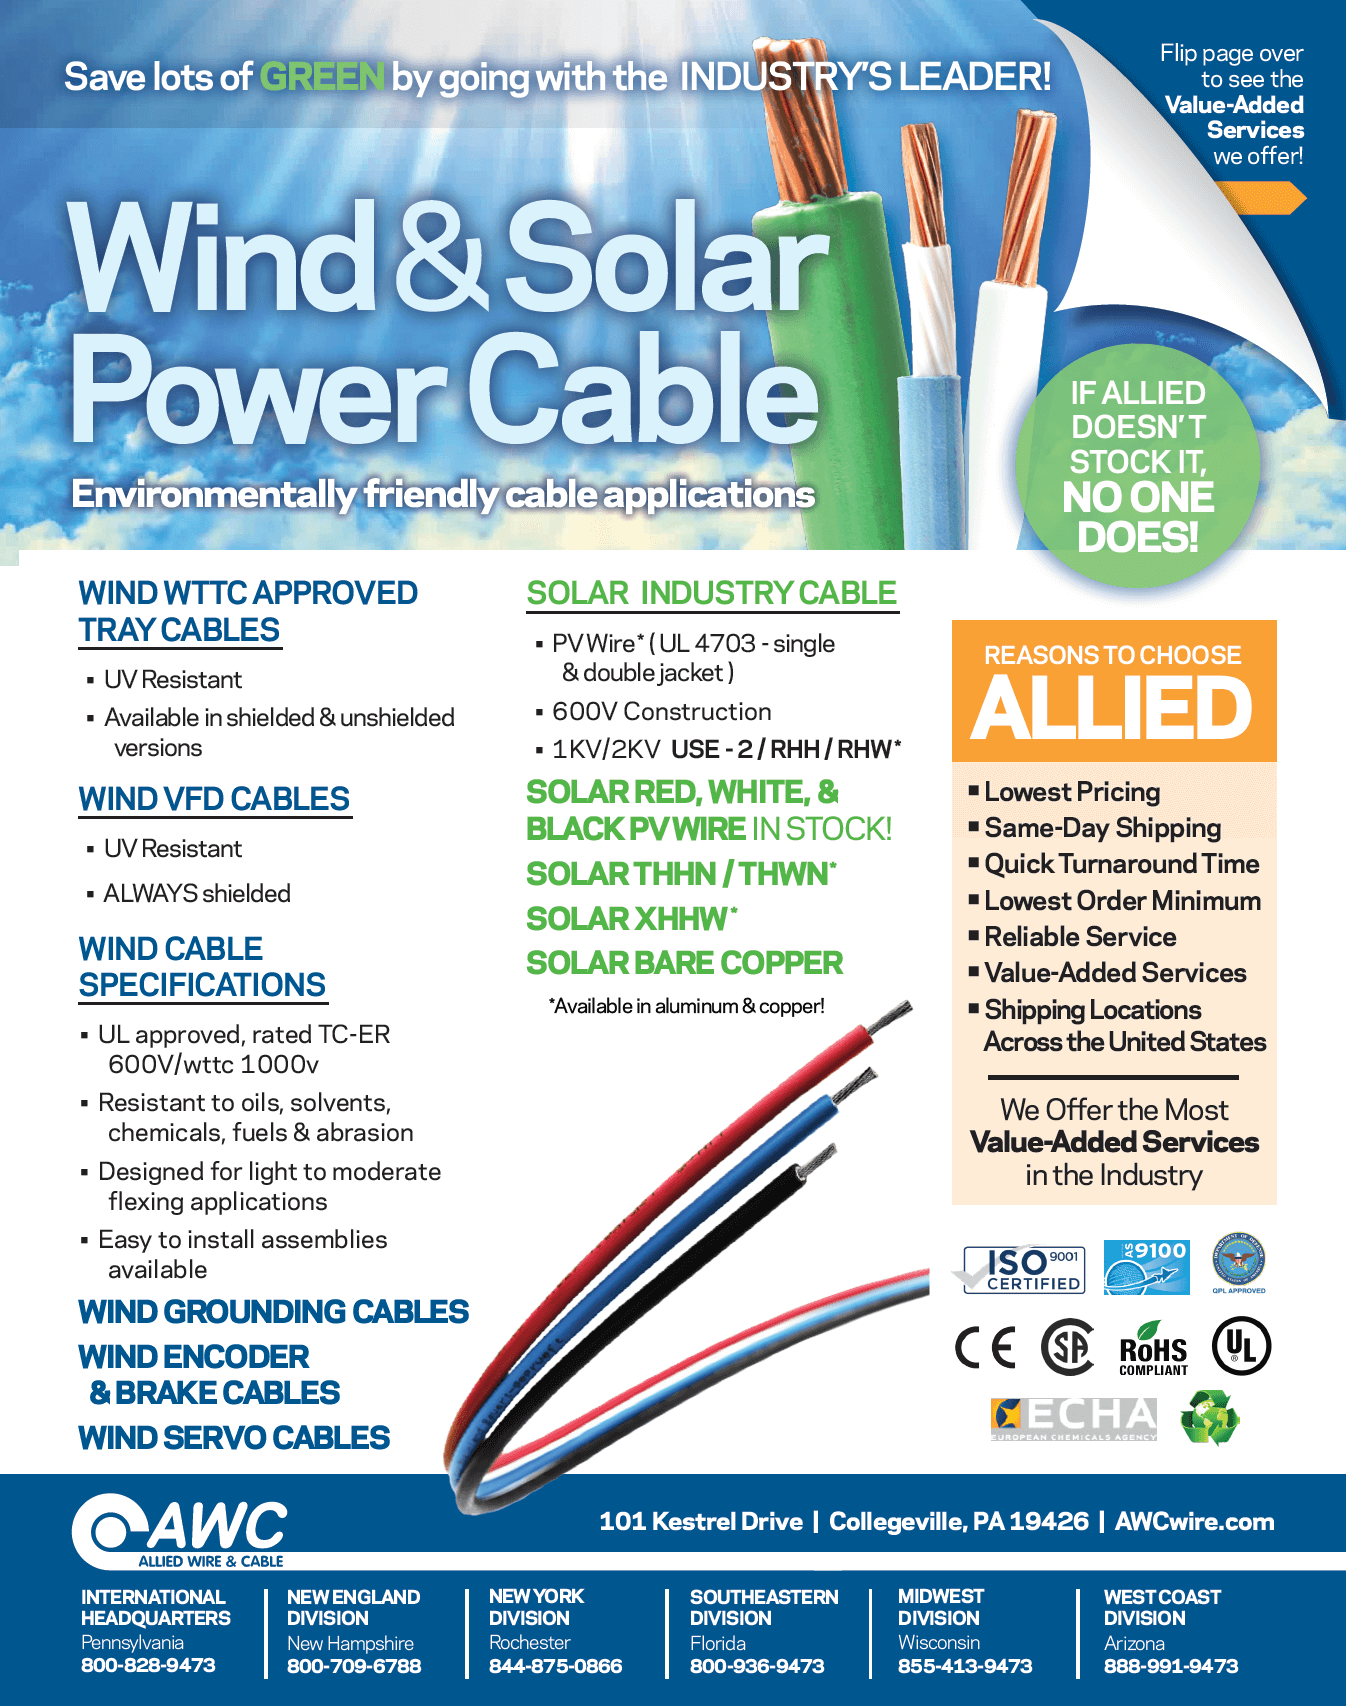 Wind & Solar Power Cable Line Card from Allied Wire & Cable